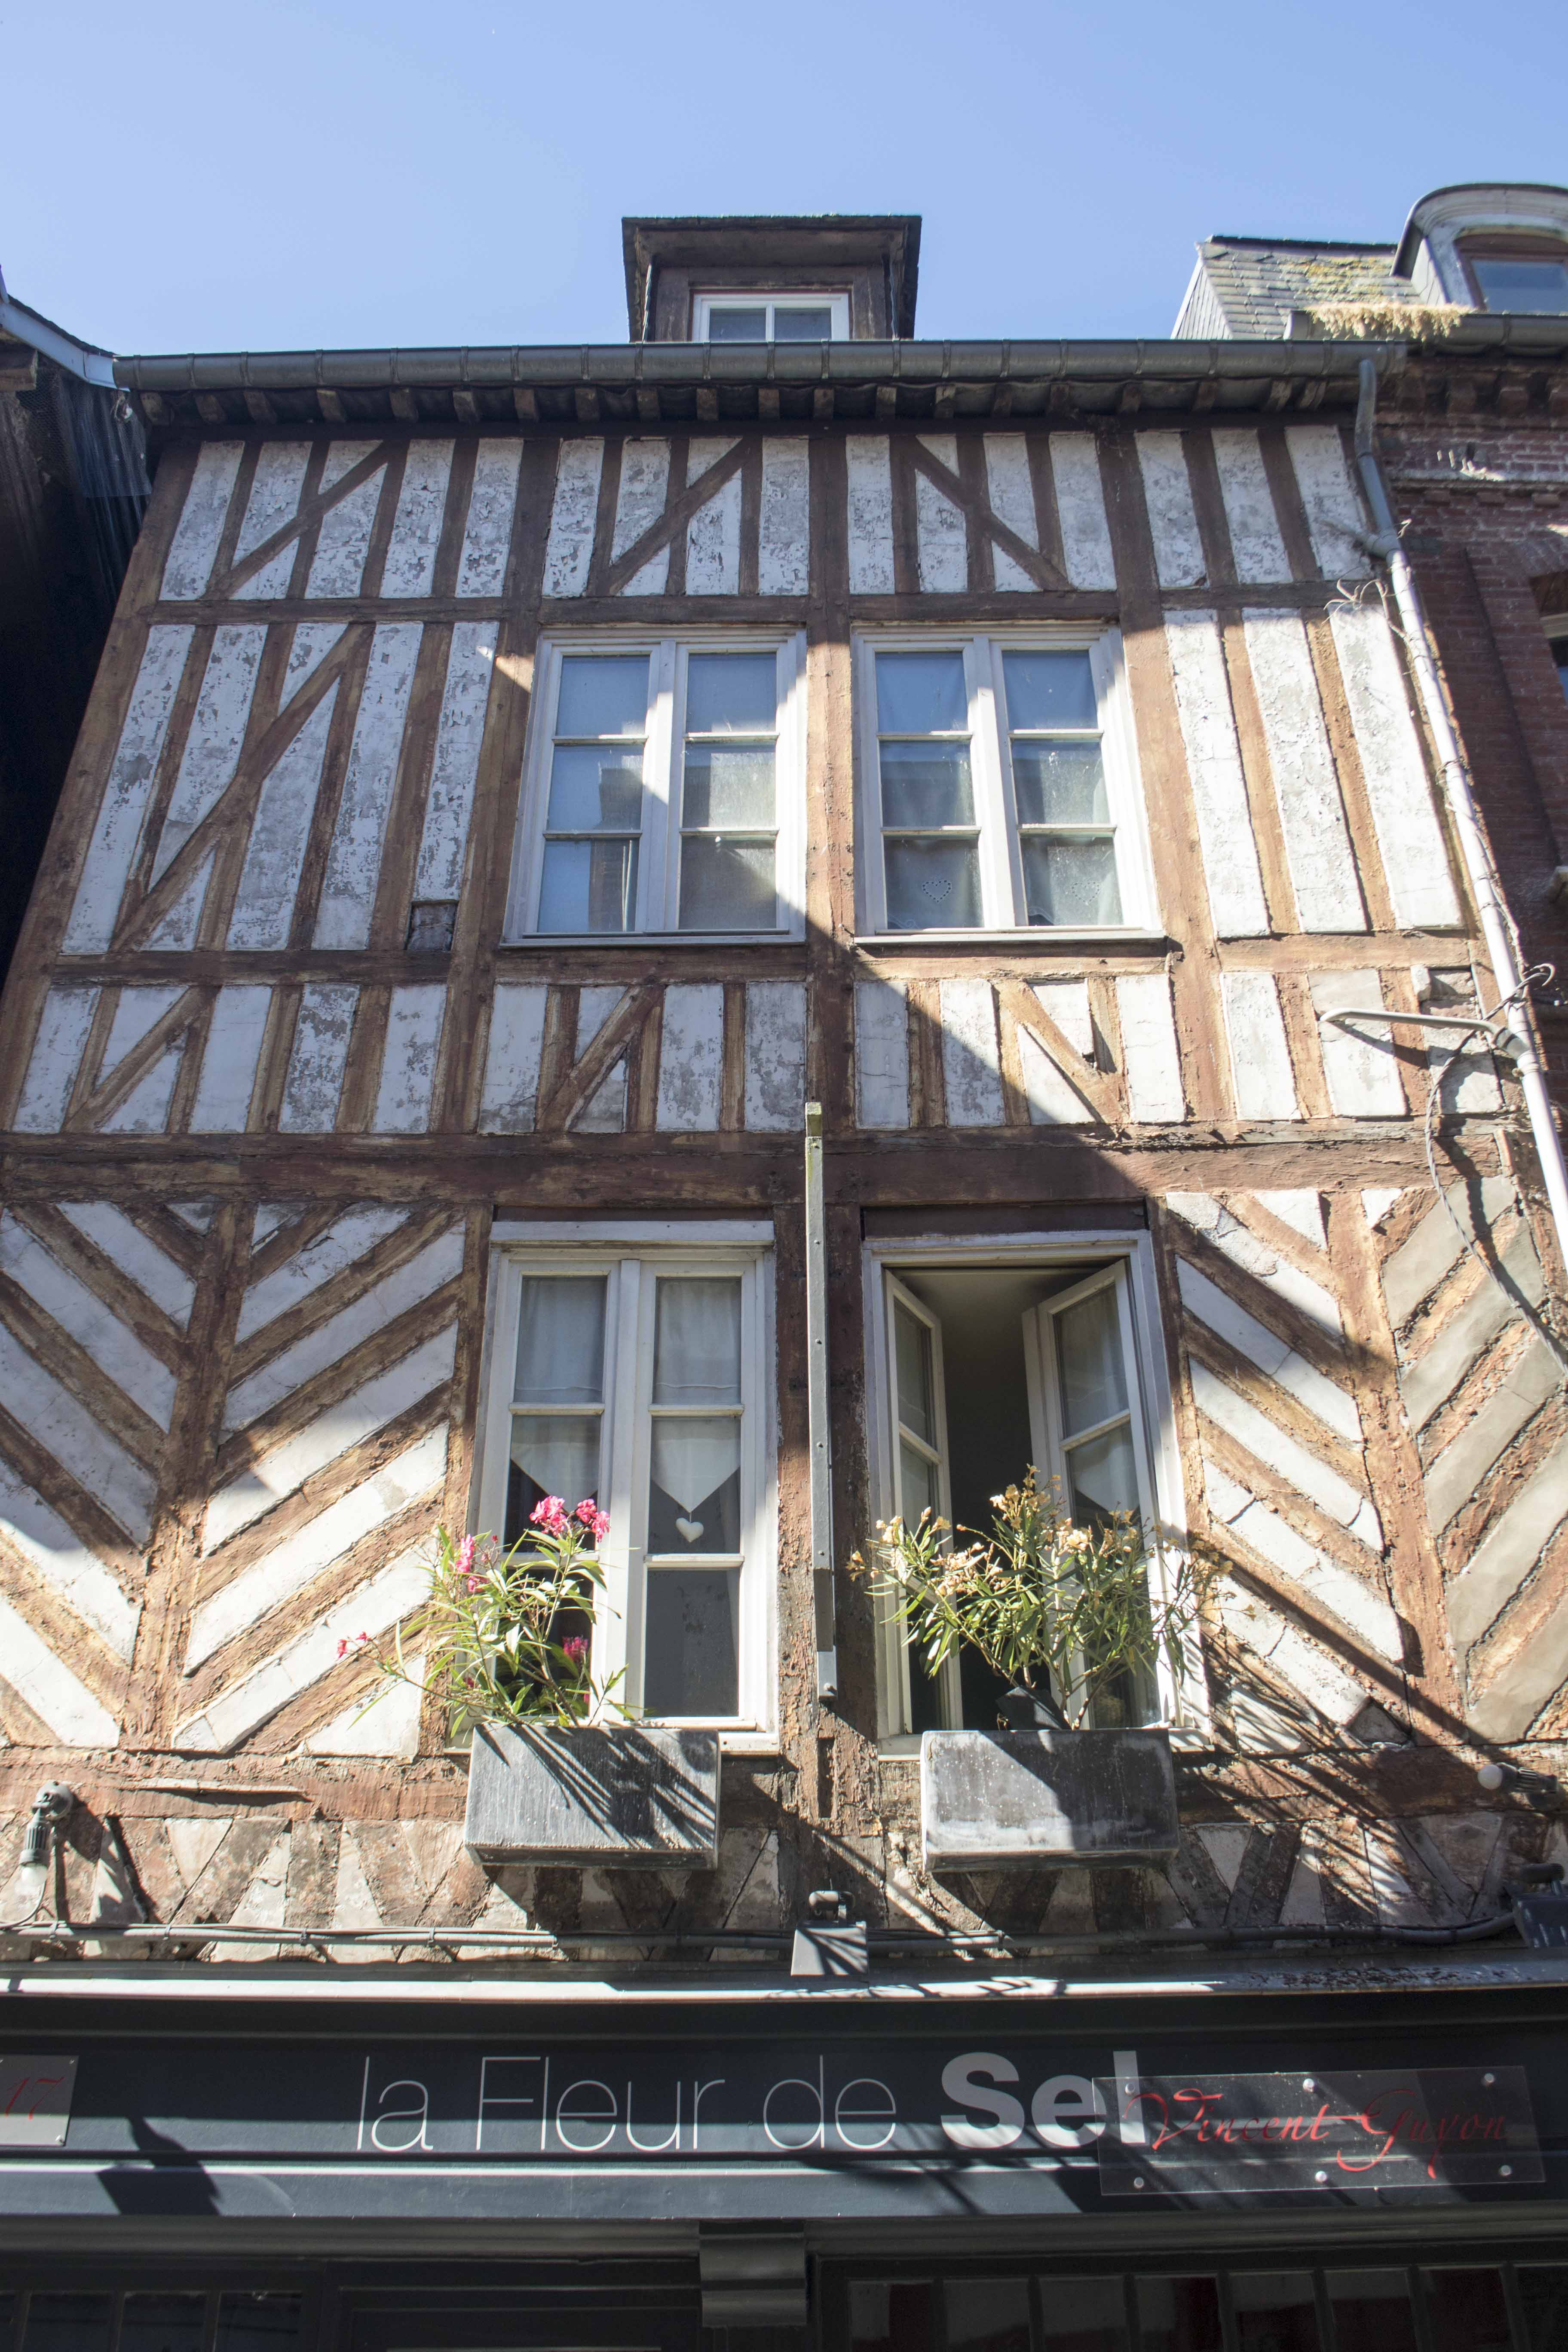 Beautiful Normand building in Honfleur